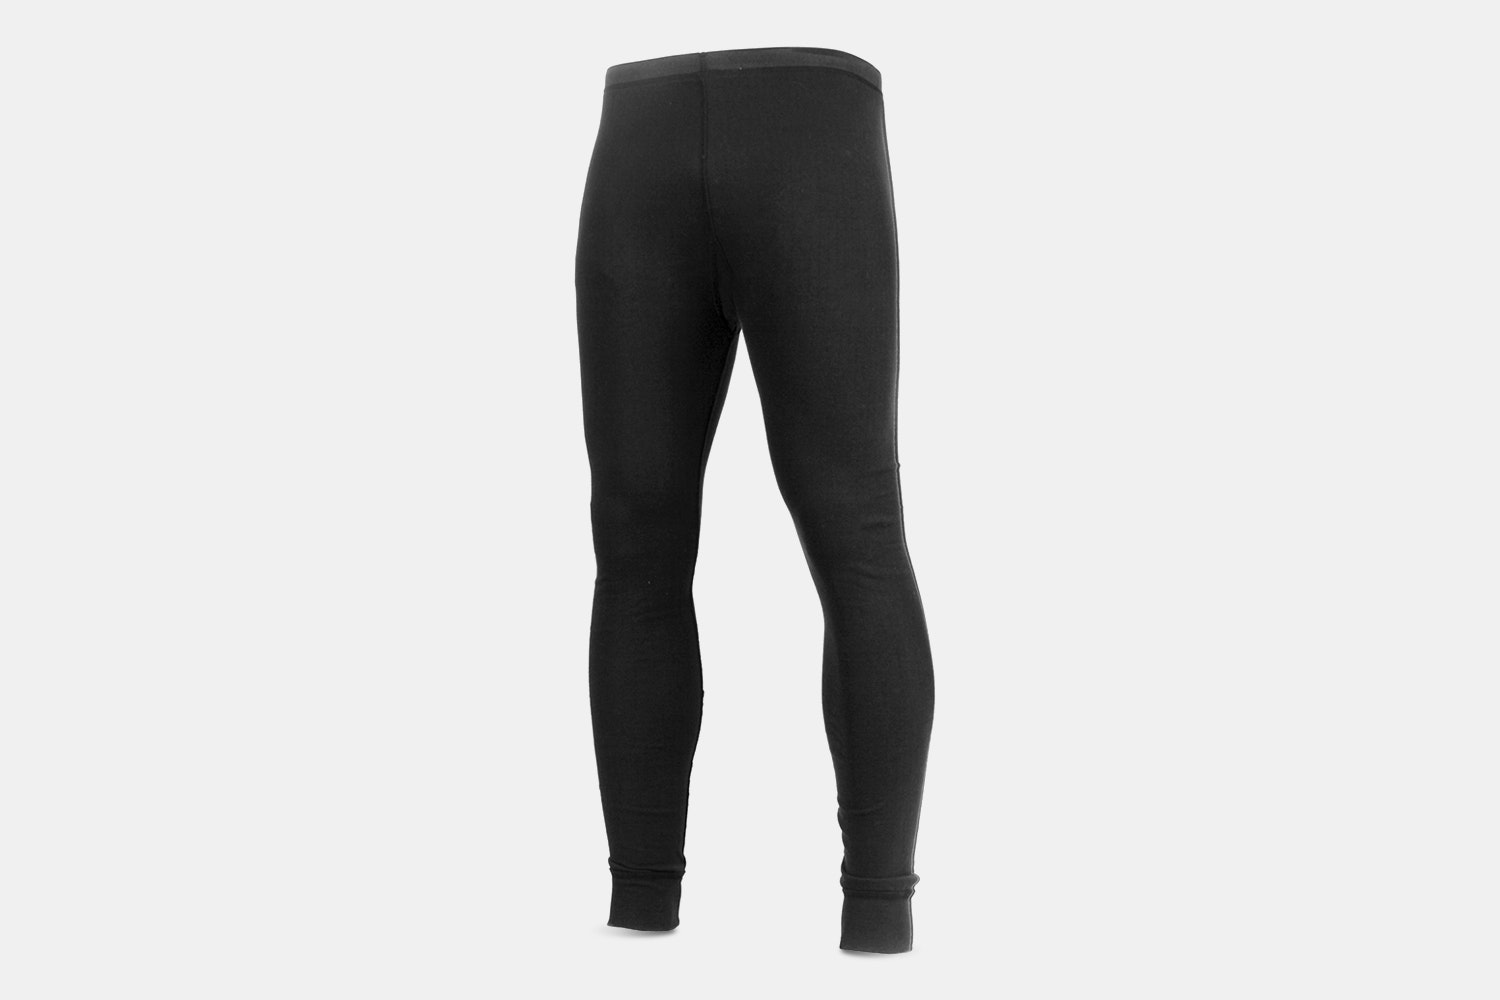 Midweight Thermal Knit Bottom